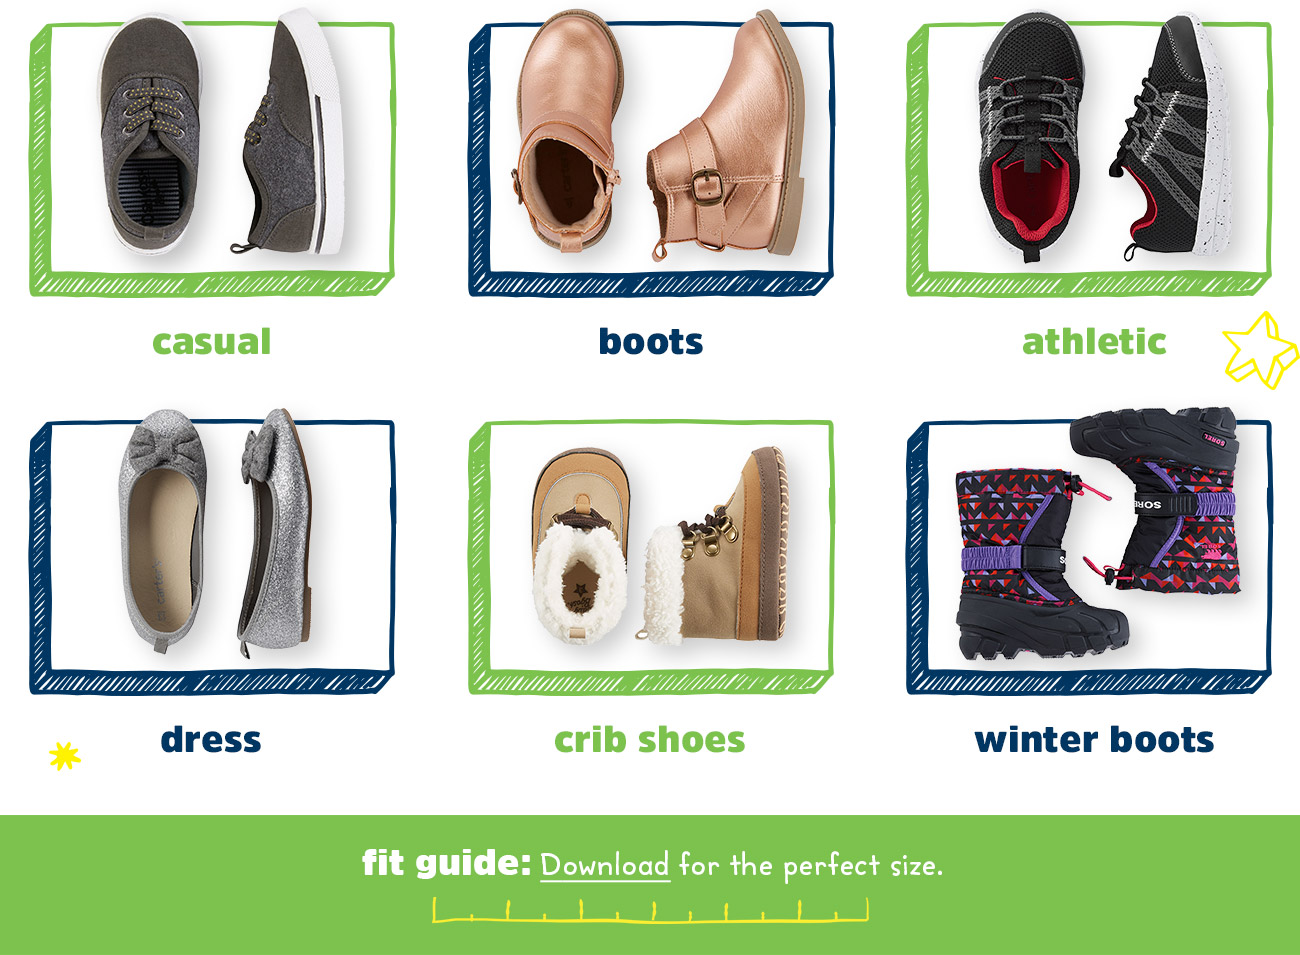 Casual - Boots - Athletic - Dress - Crib Shoes - Winter Boots